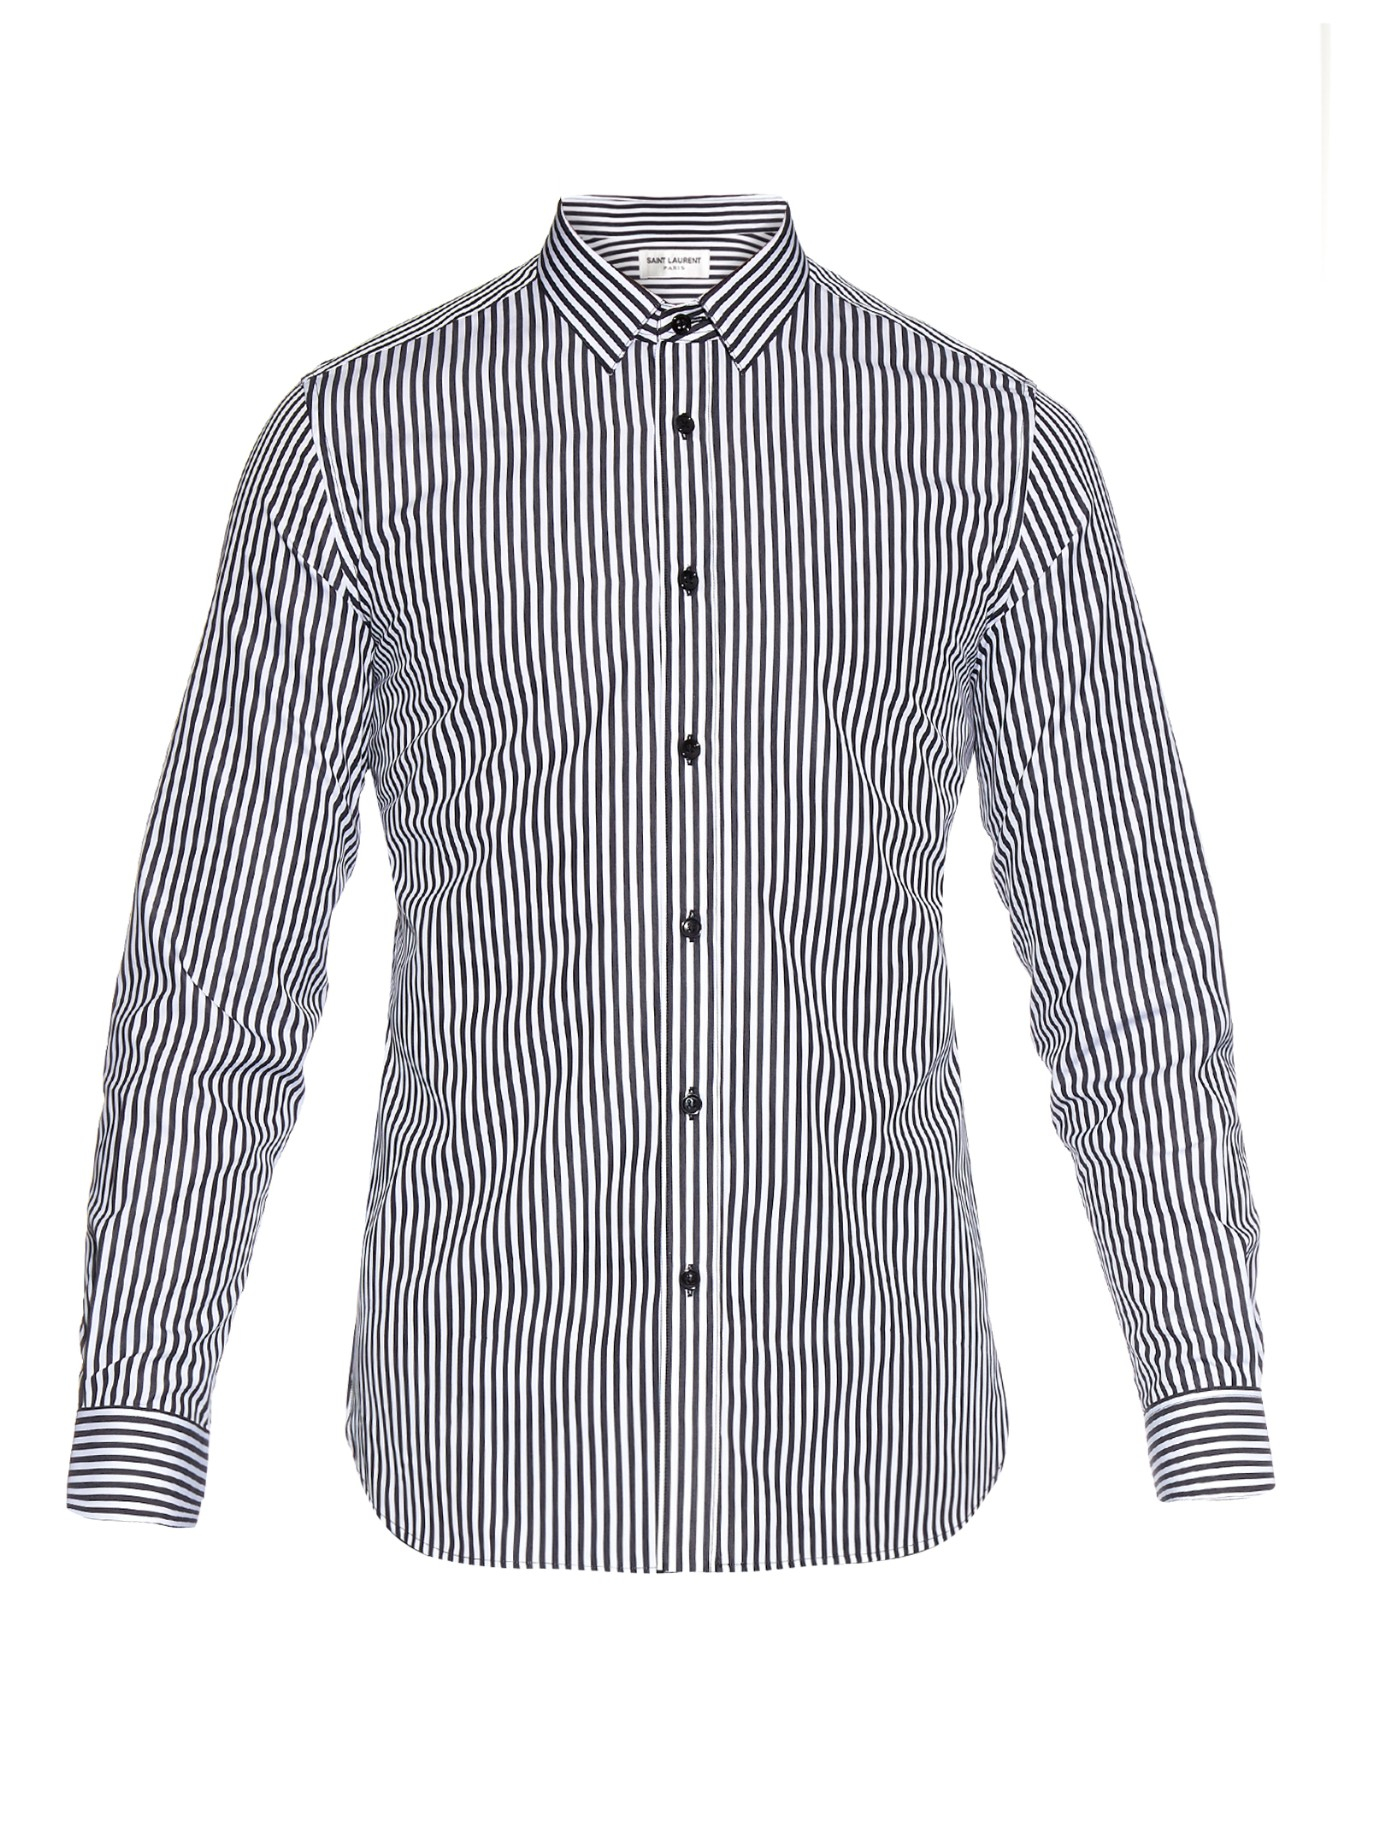 Cheap Sale Real Black striped shirt Saint Laurent Explore Online KmoSRrZOs